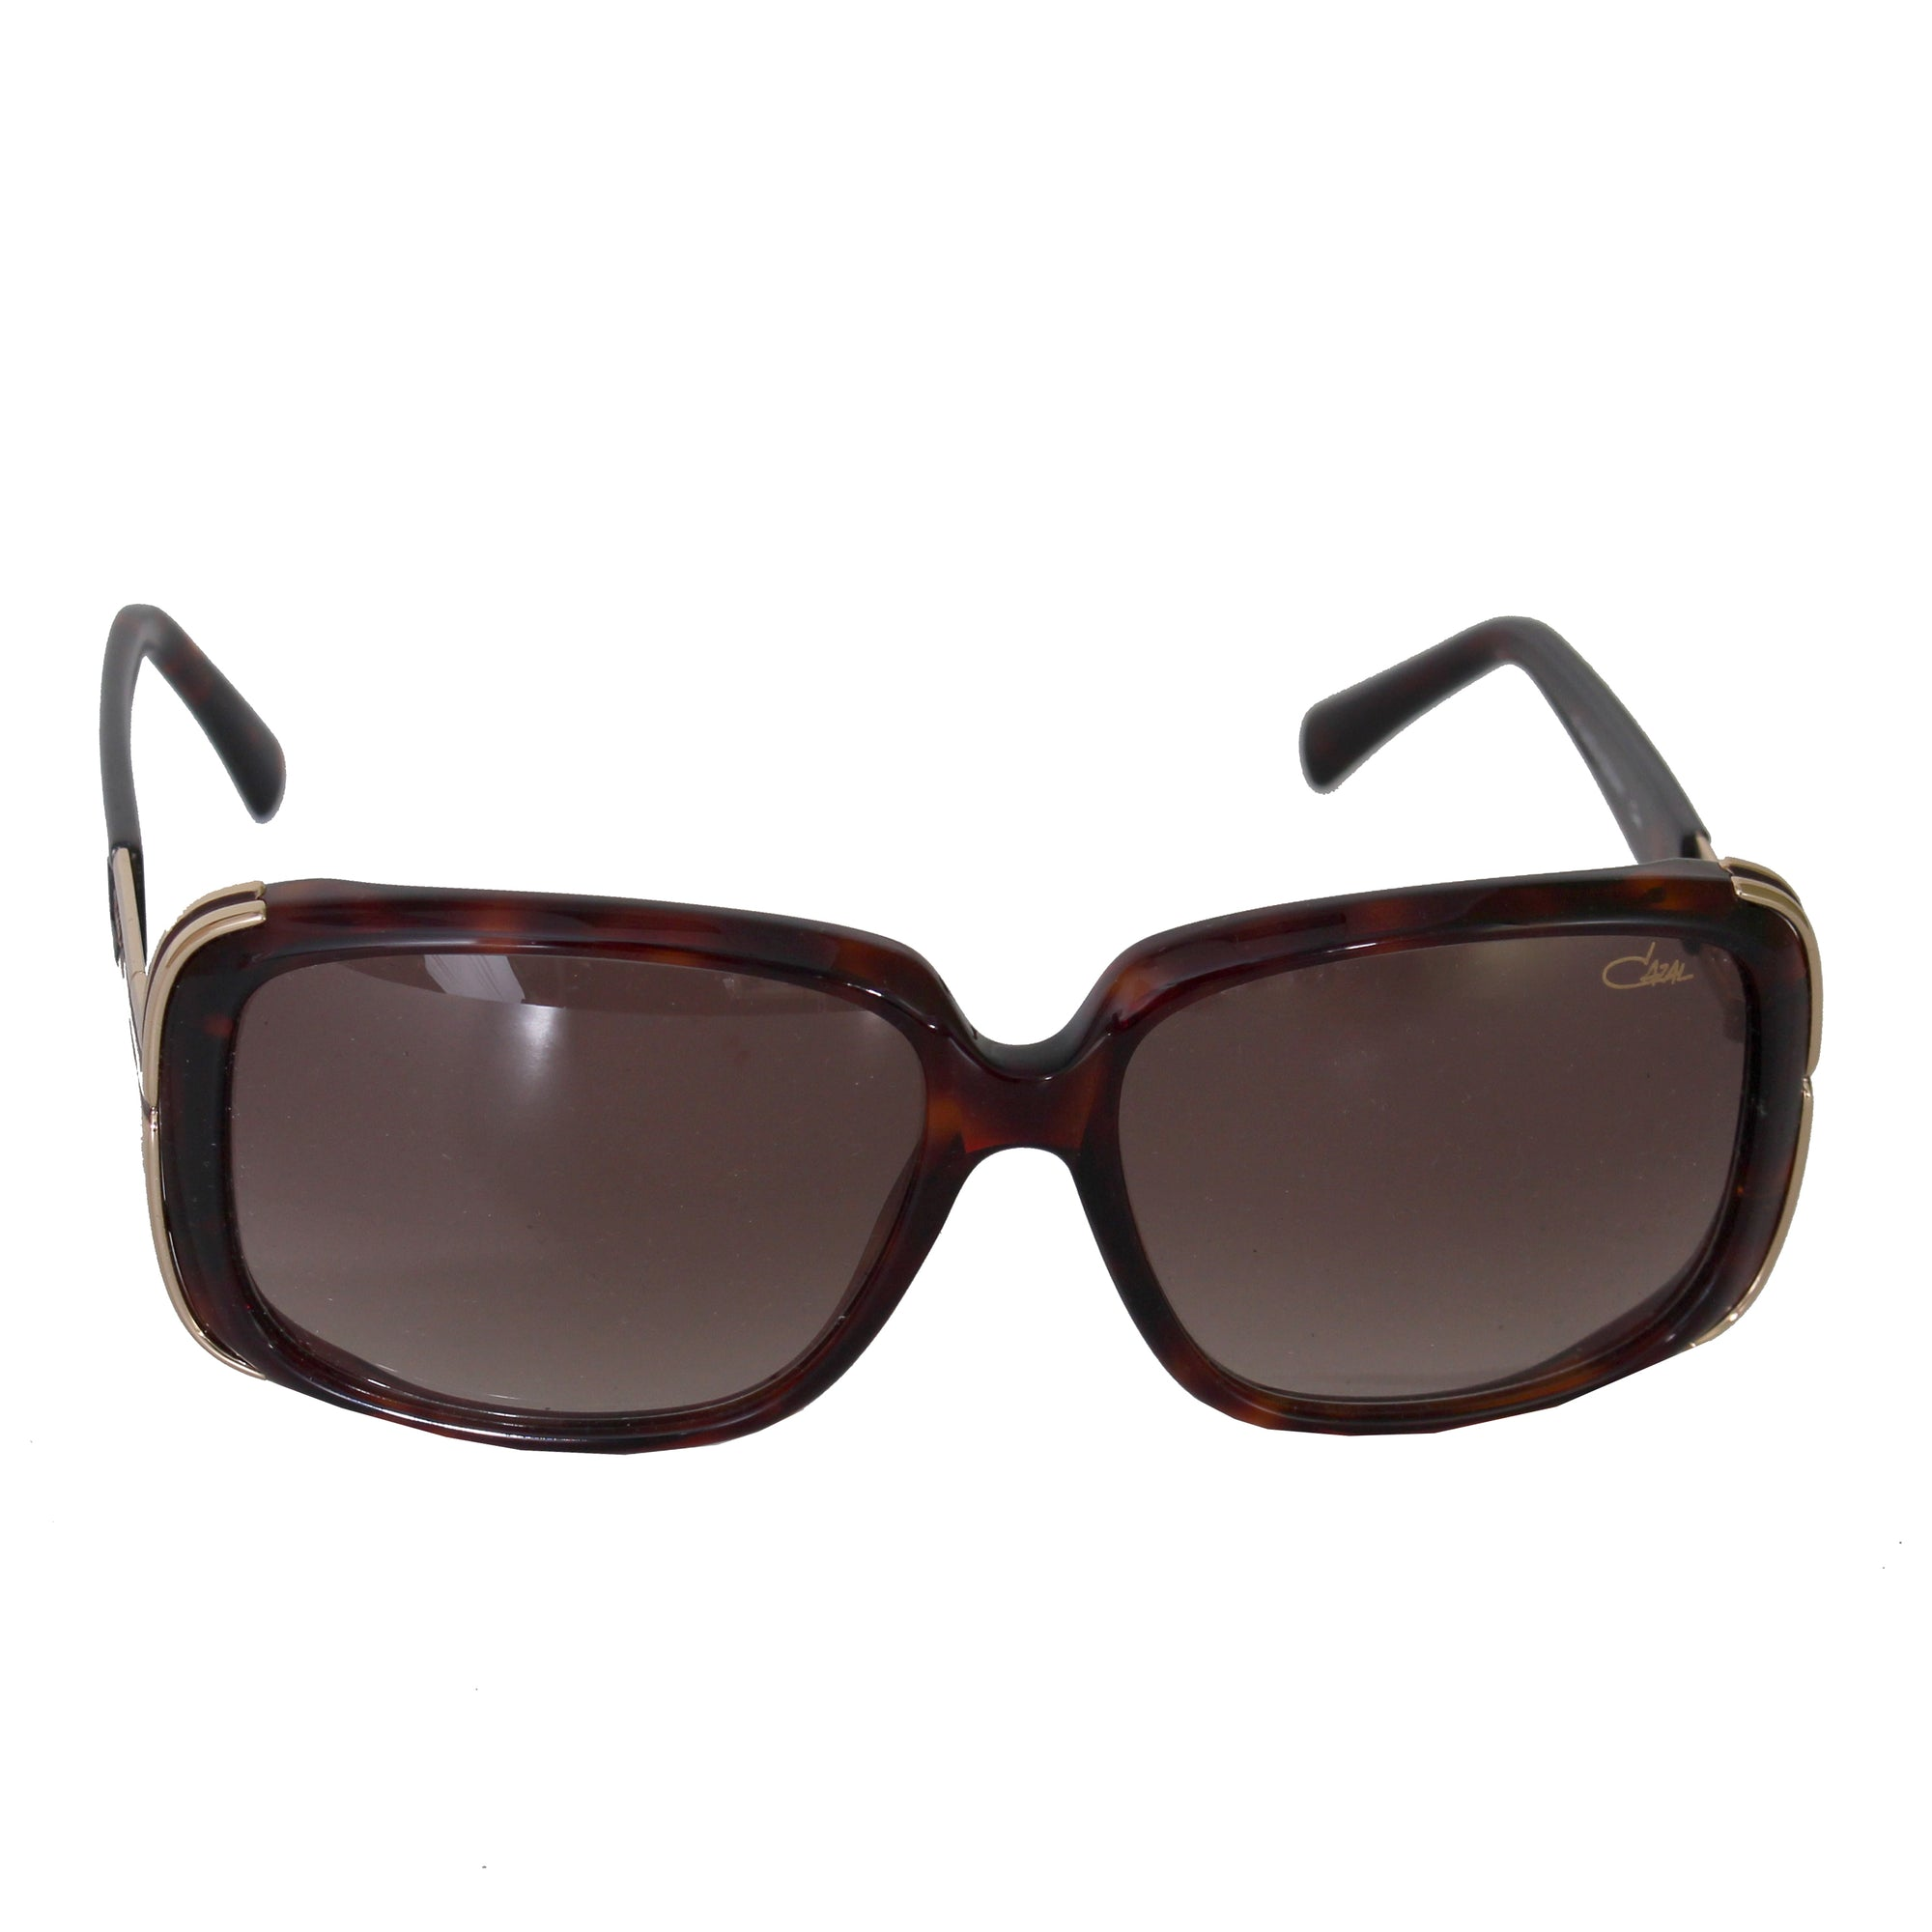 Cazal 8017 Sunglasses